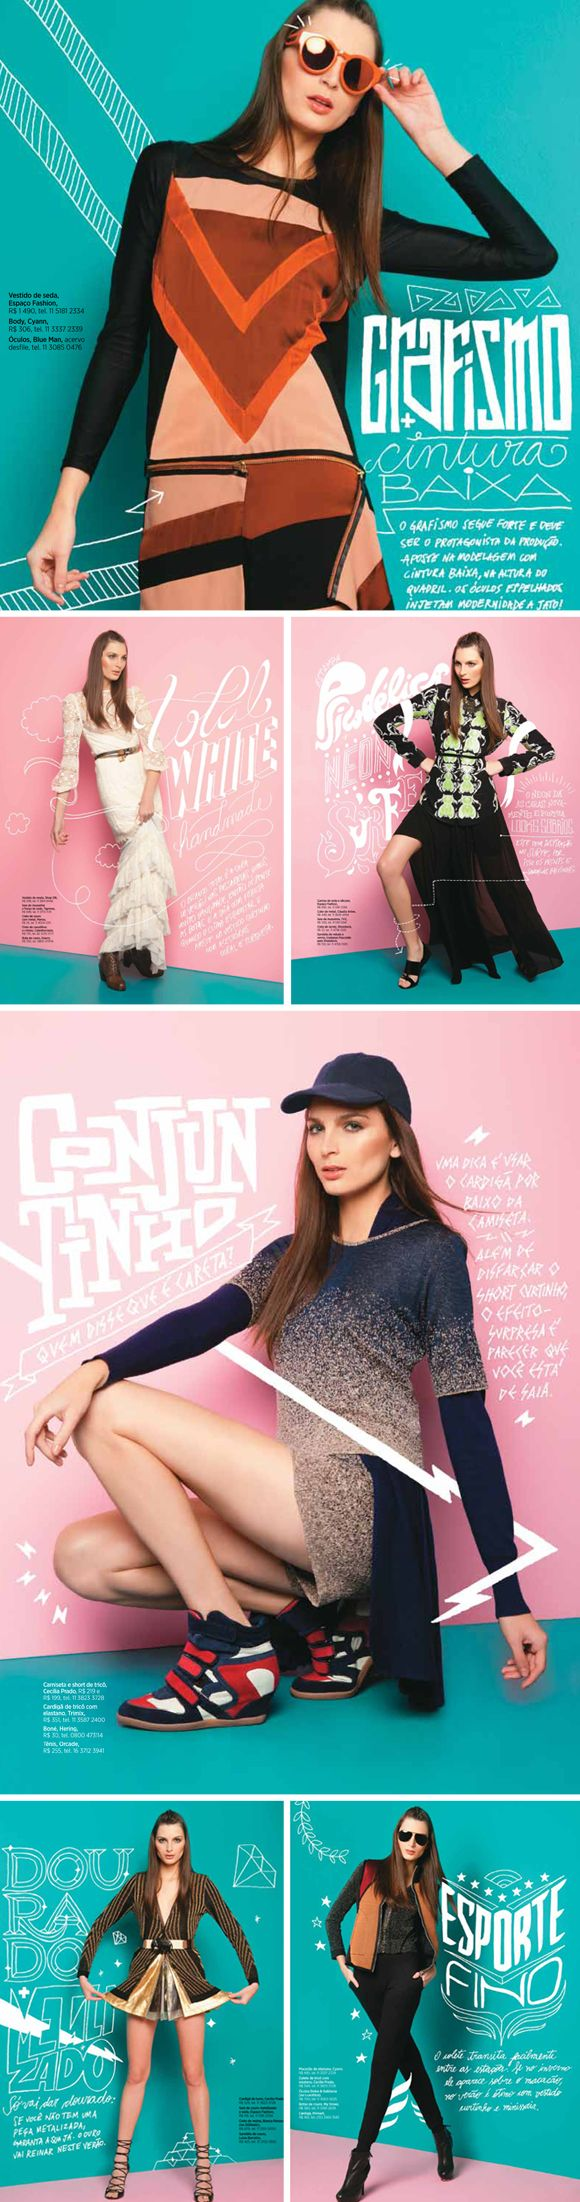 Women's Health - agosto/2012 | Designer: Giovanni Tinti. Reaaly great combination of editorial typography and the blended photographic space